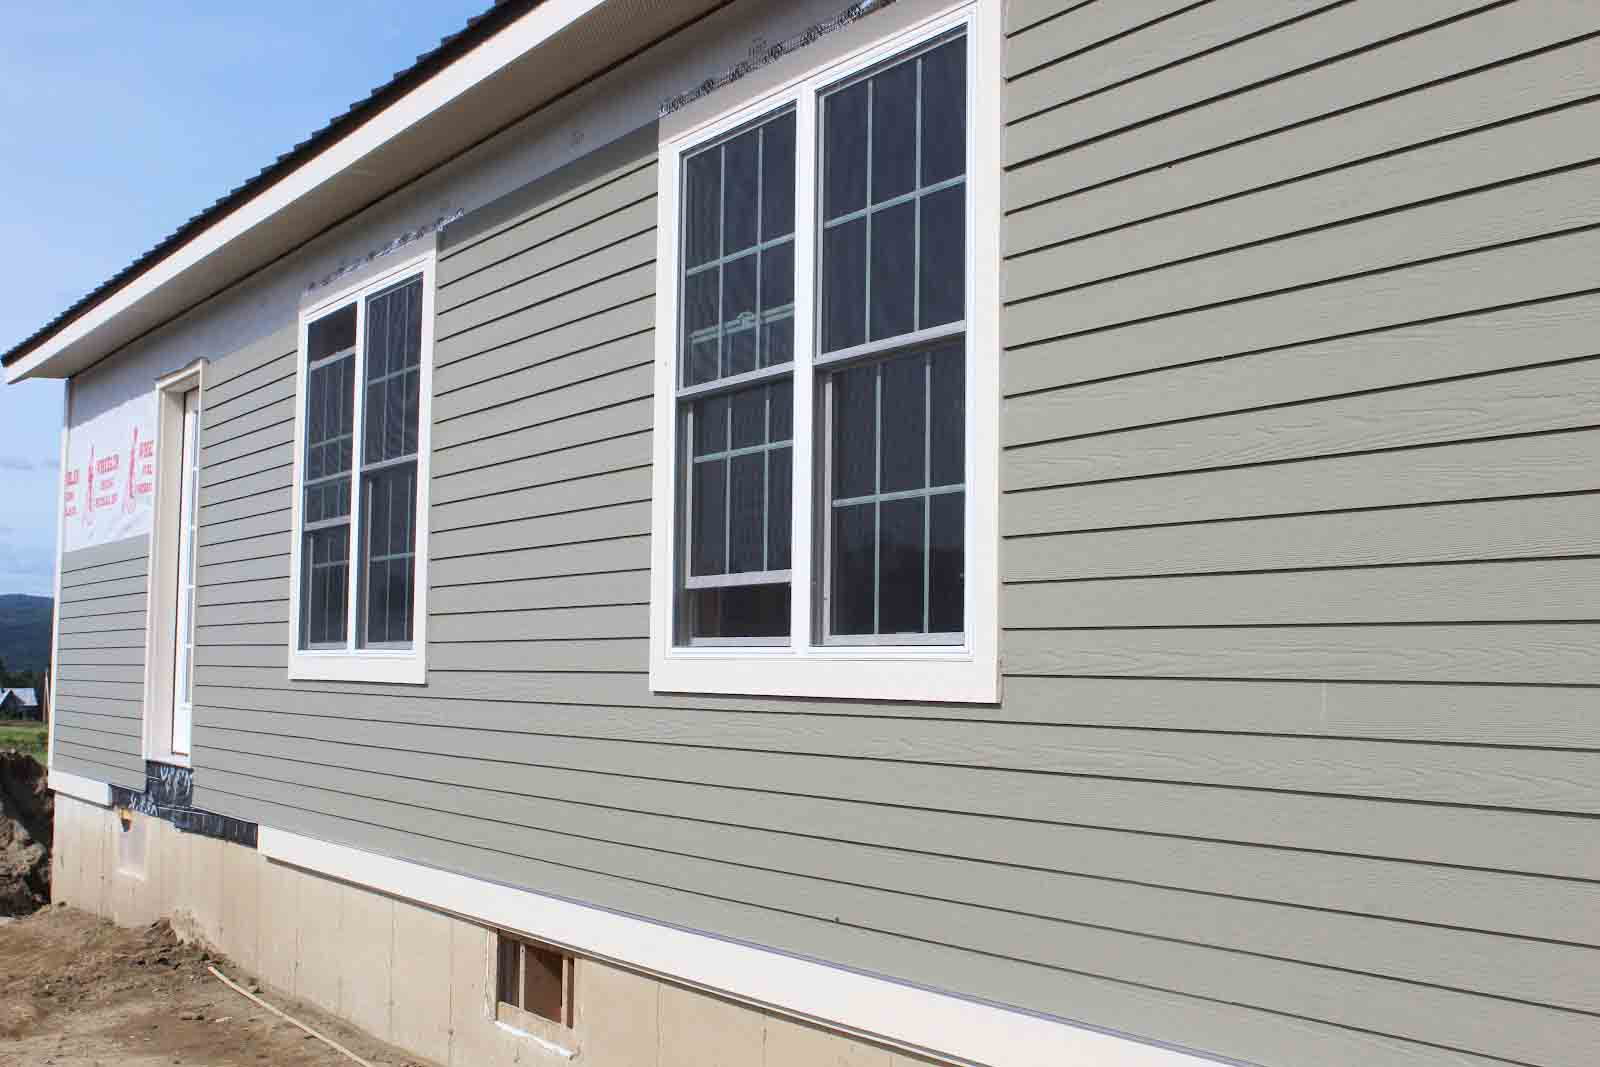 Hardi Plank Siding >> How much does Fiber Cement Siding cost? | Siding-Contractor.com